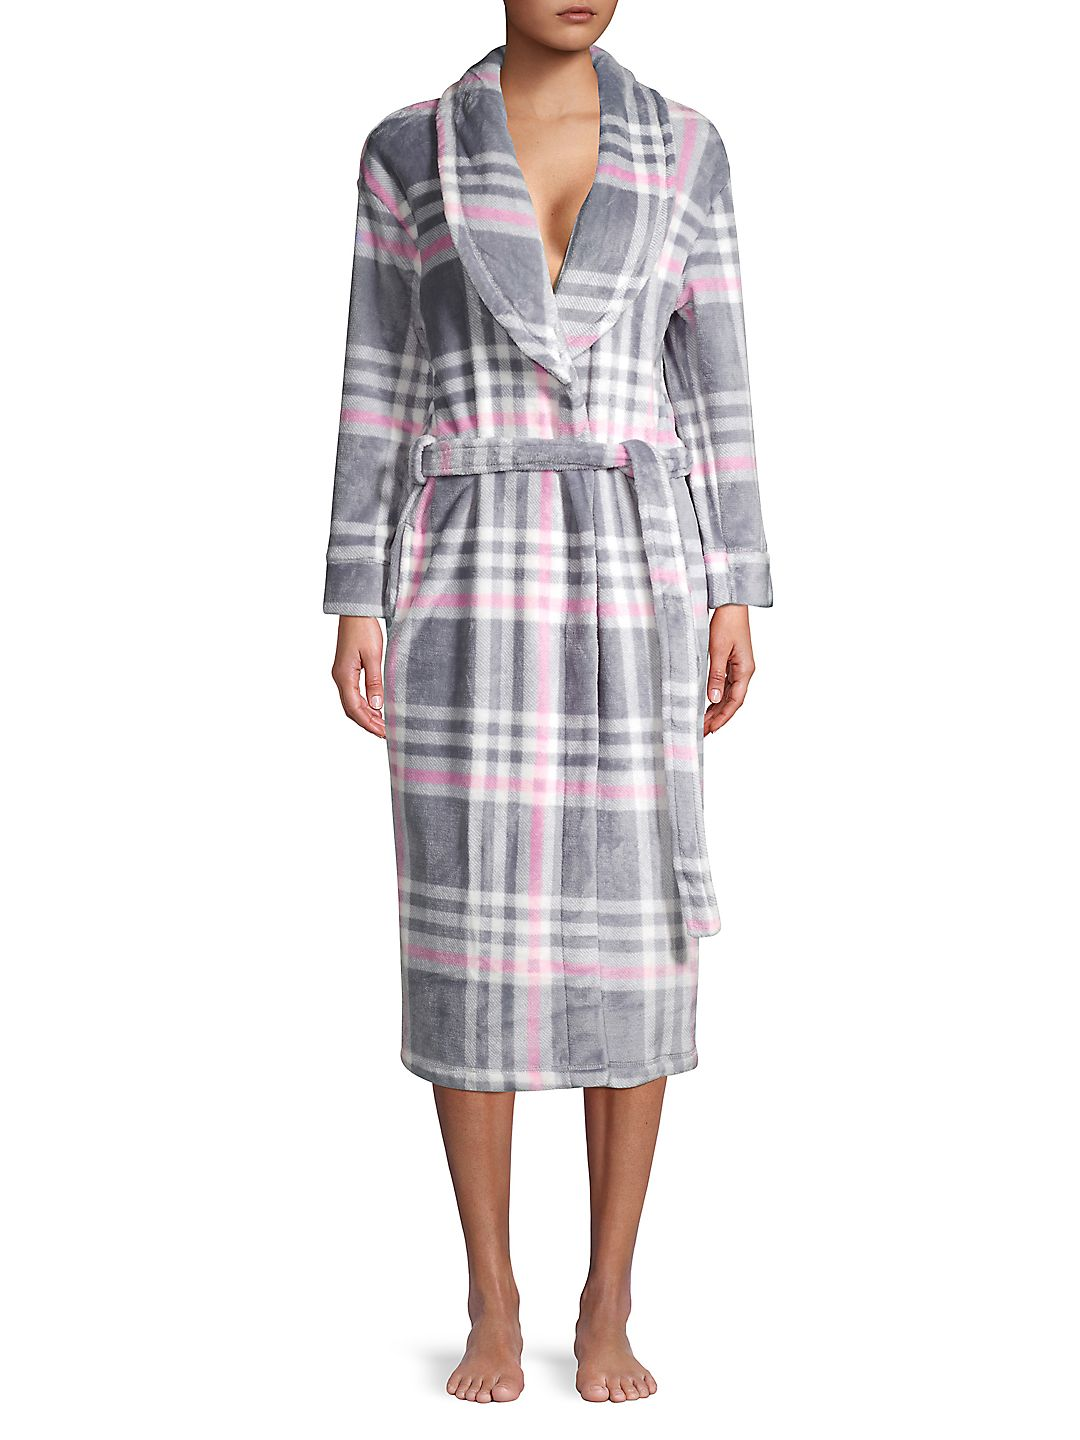 Self-Tie Collared Robe